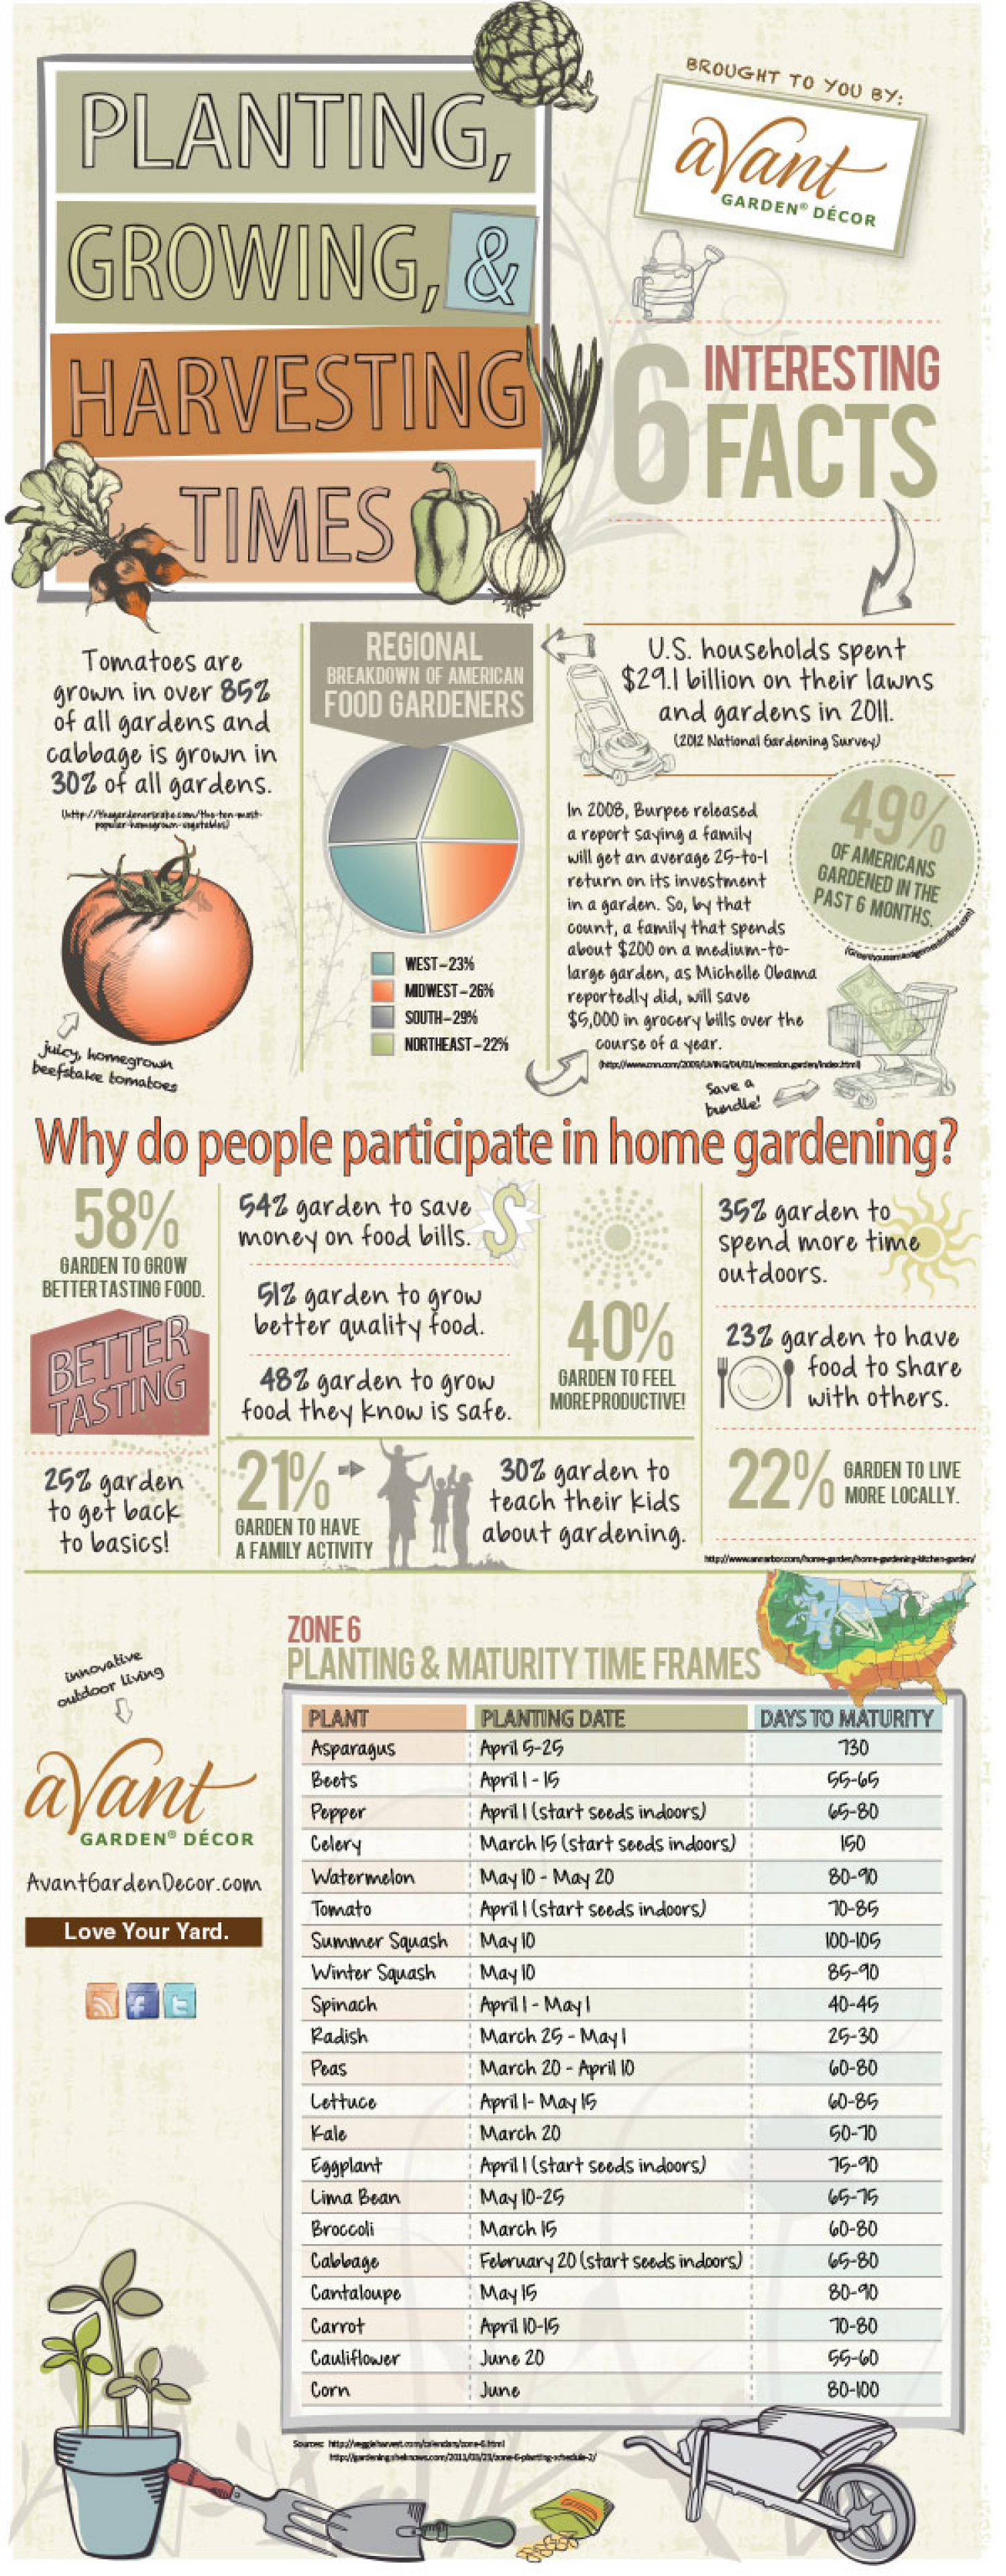 Planting, Growing and Harvesting Times Infographic